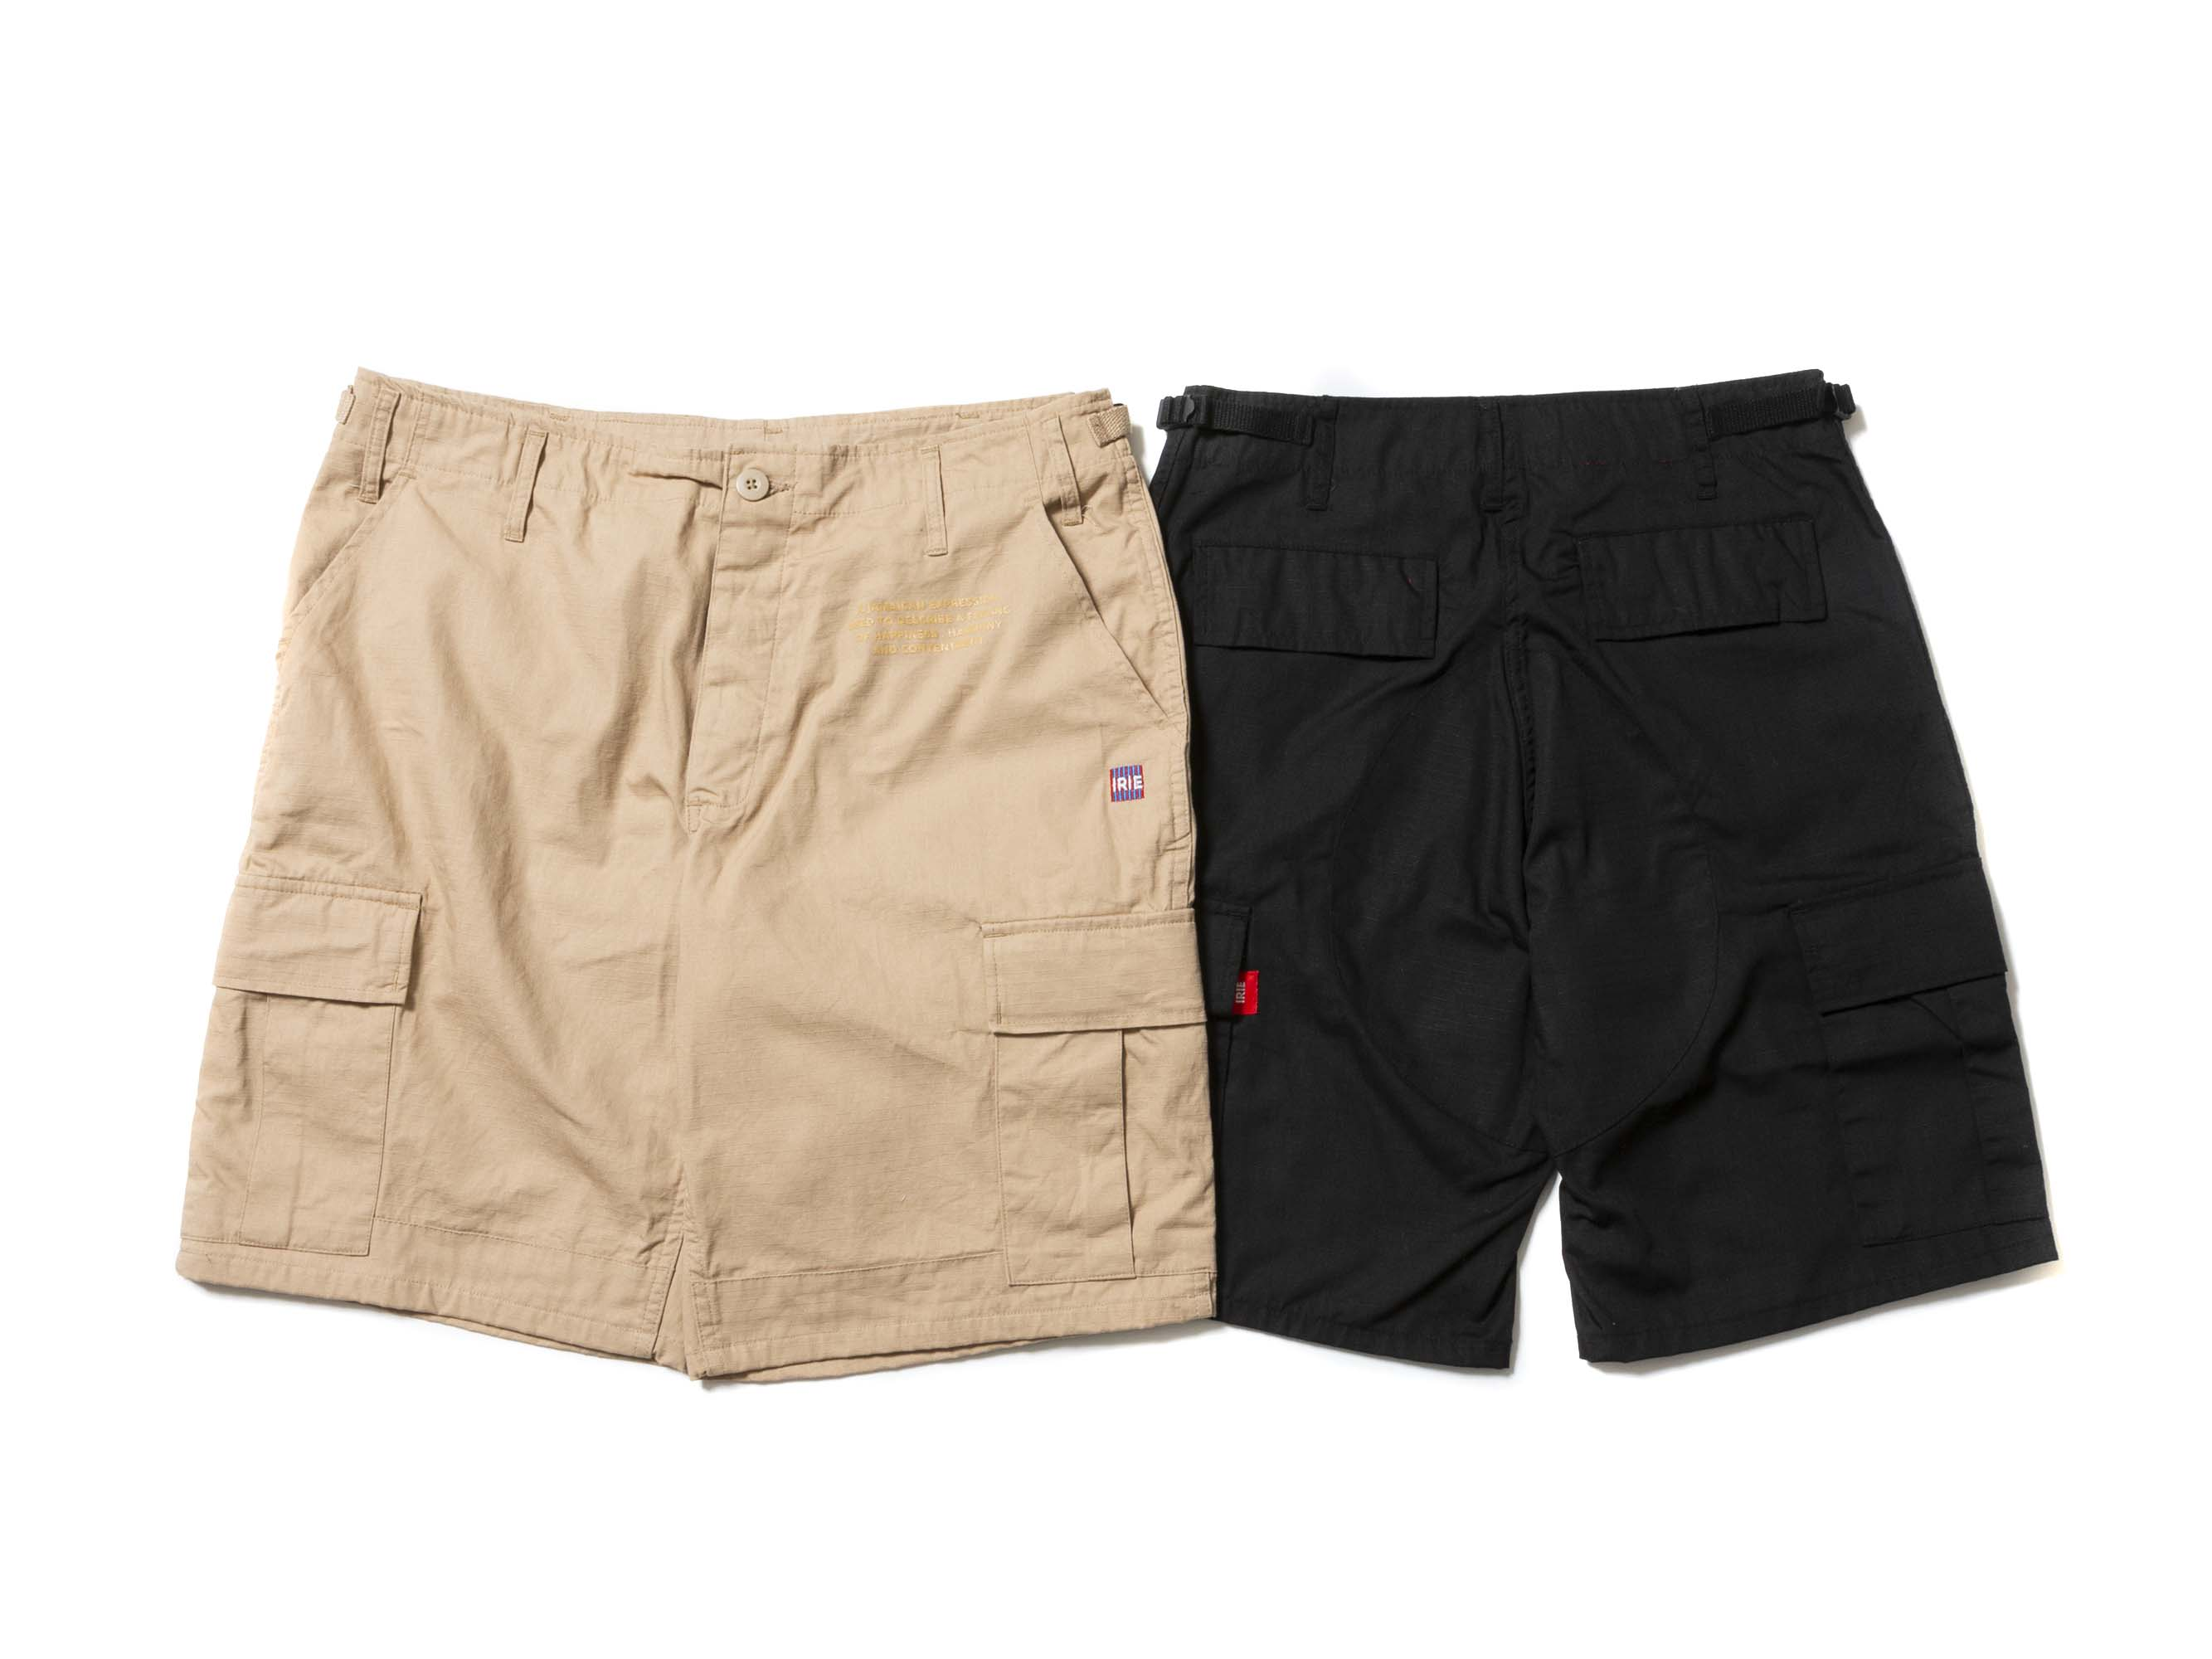 【30% OFF】RIPSTOP CARGO SHORTS - IRIE by irielife